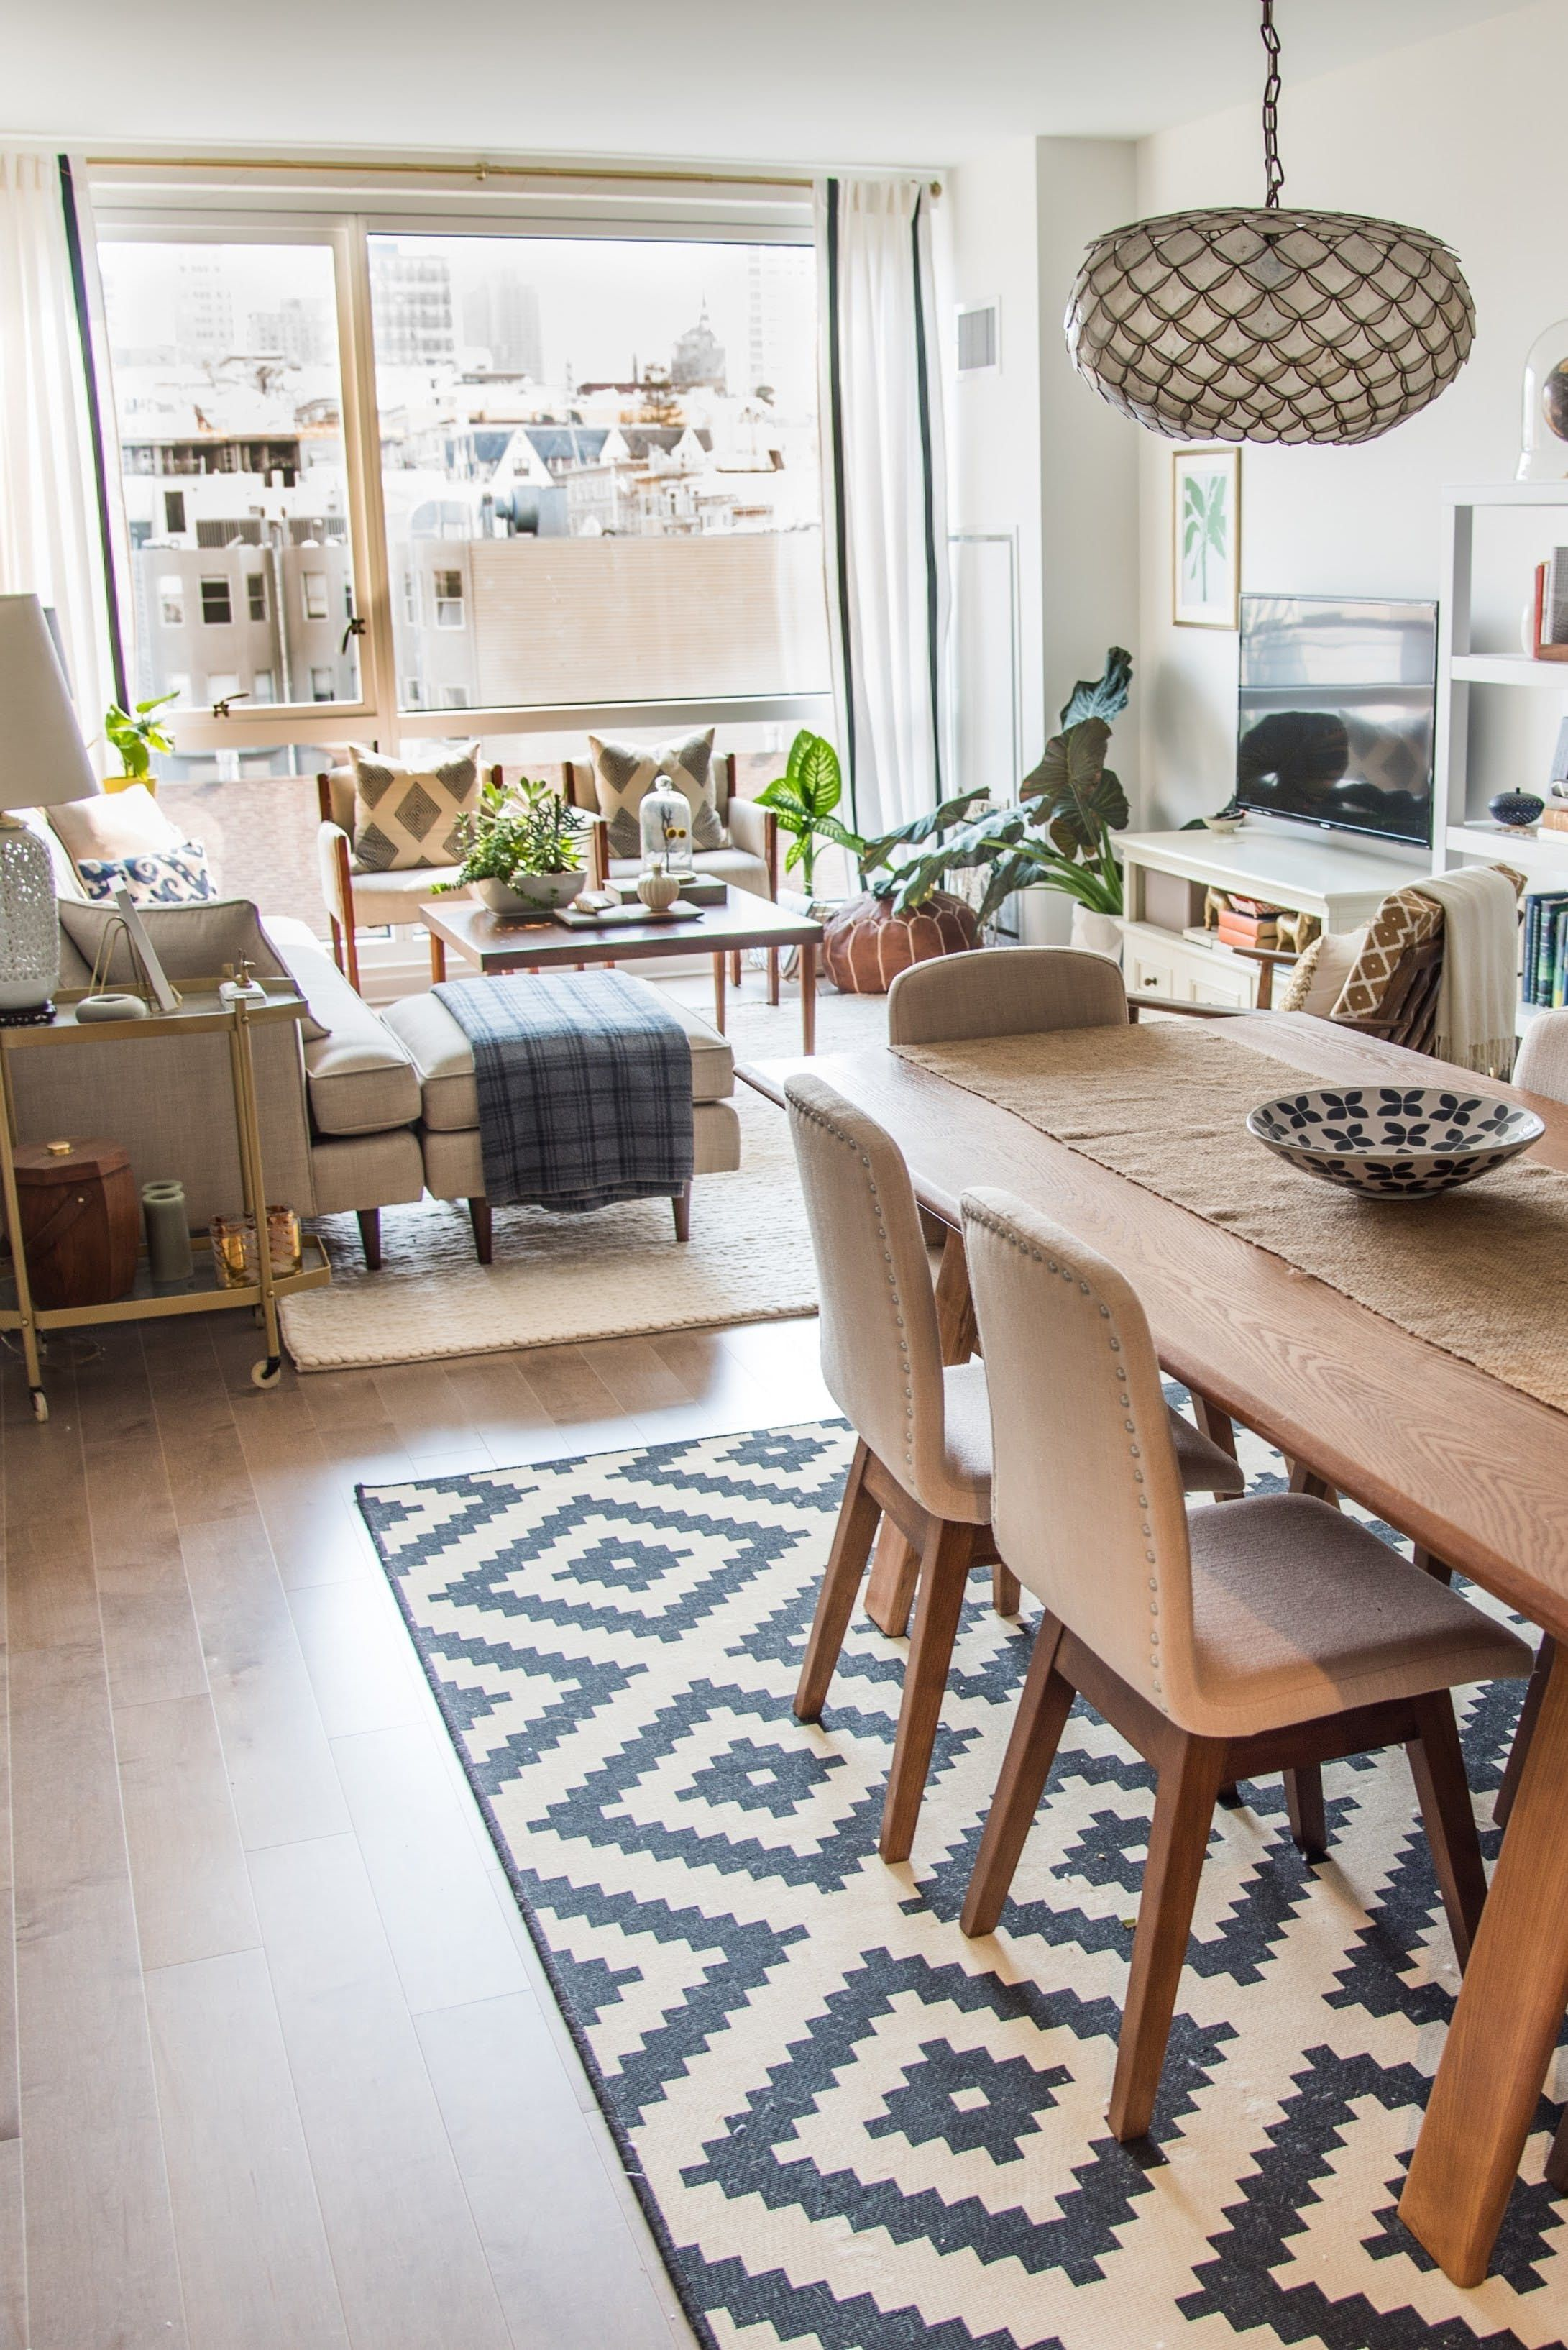 House Tour: A Sophisticated Mixed & Matched Rental | small ...